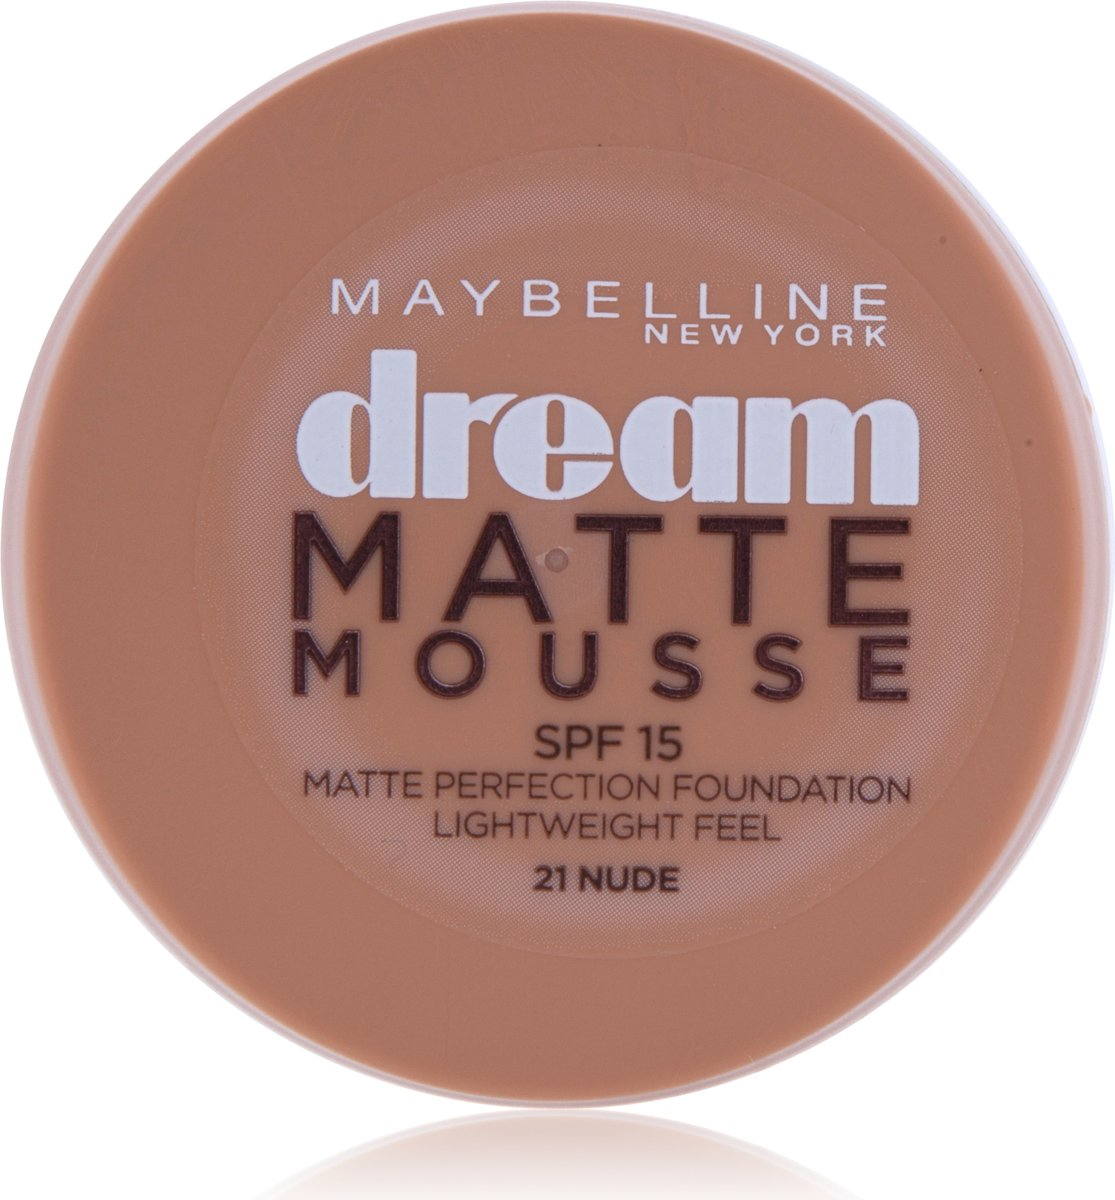 Maybelline Dream Matte Mousse 21 Nude/Beige Doré Pot Crème foundationmake-up